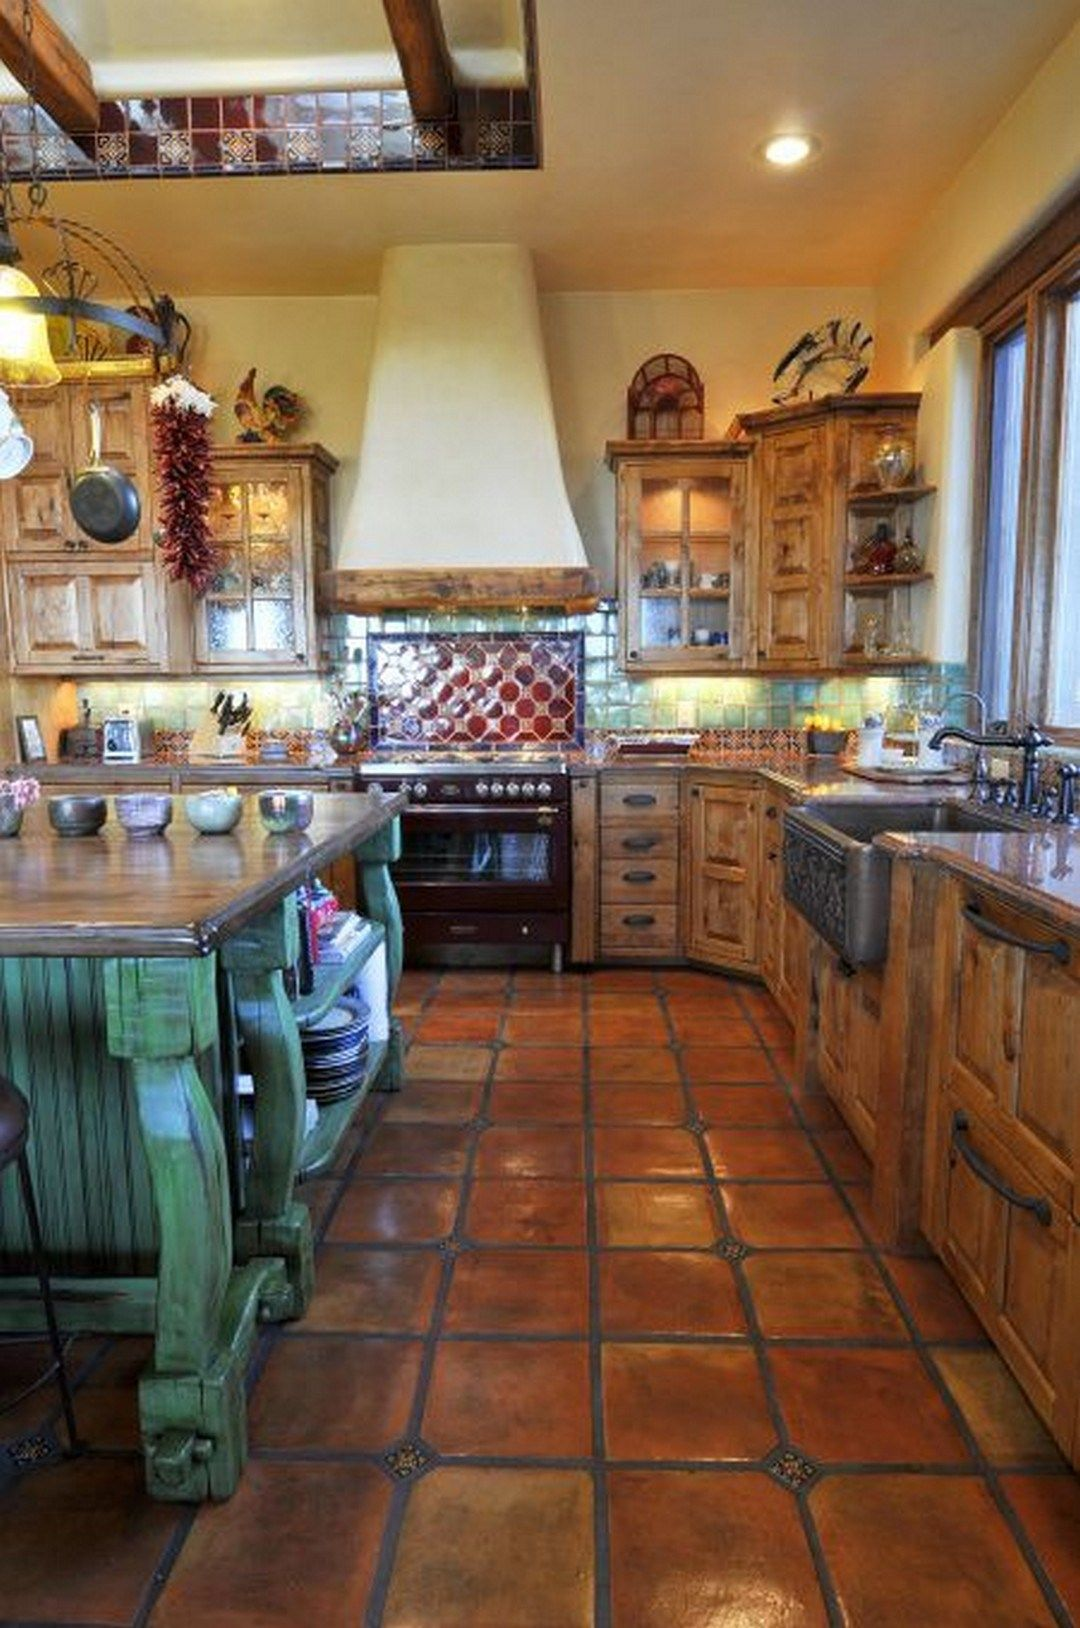 Renew Your Ordinary Kitchen With These Inspiring Rustic Country Kitchen Ideas Goodnewsarchitecture Spanish Style Kitchen Rustic Country Kitchens Rustic Kitchen